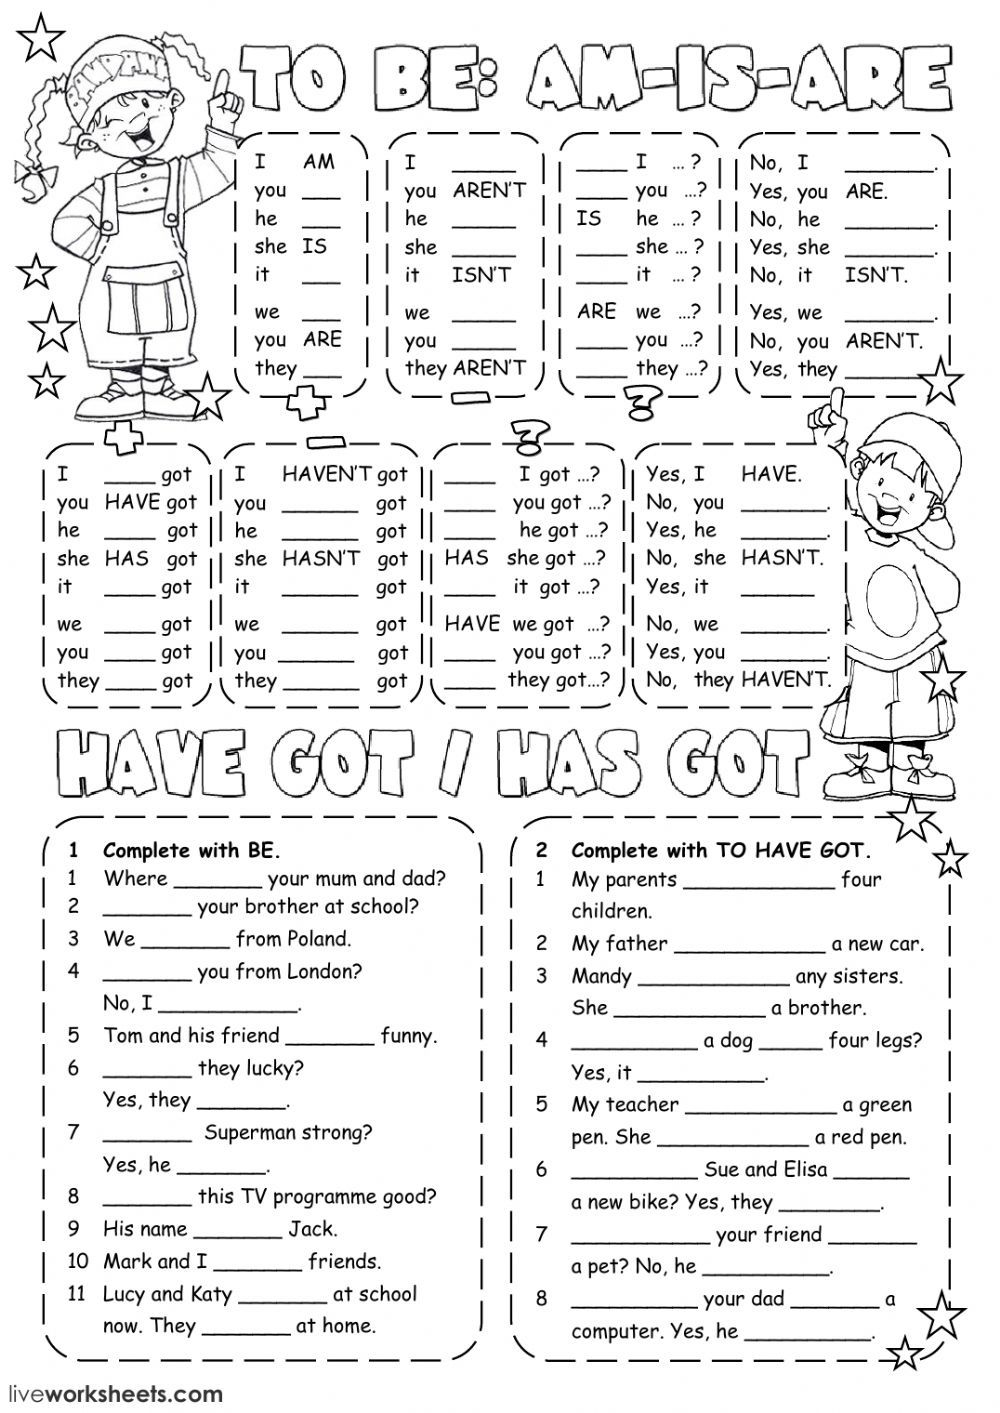 Verb to be interactive and downloadable worksheet. You can